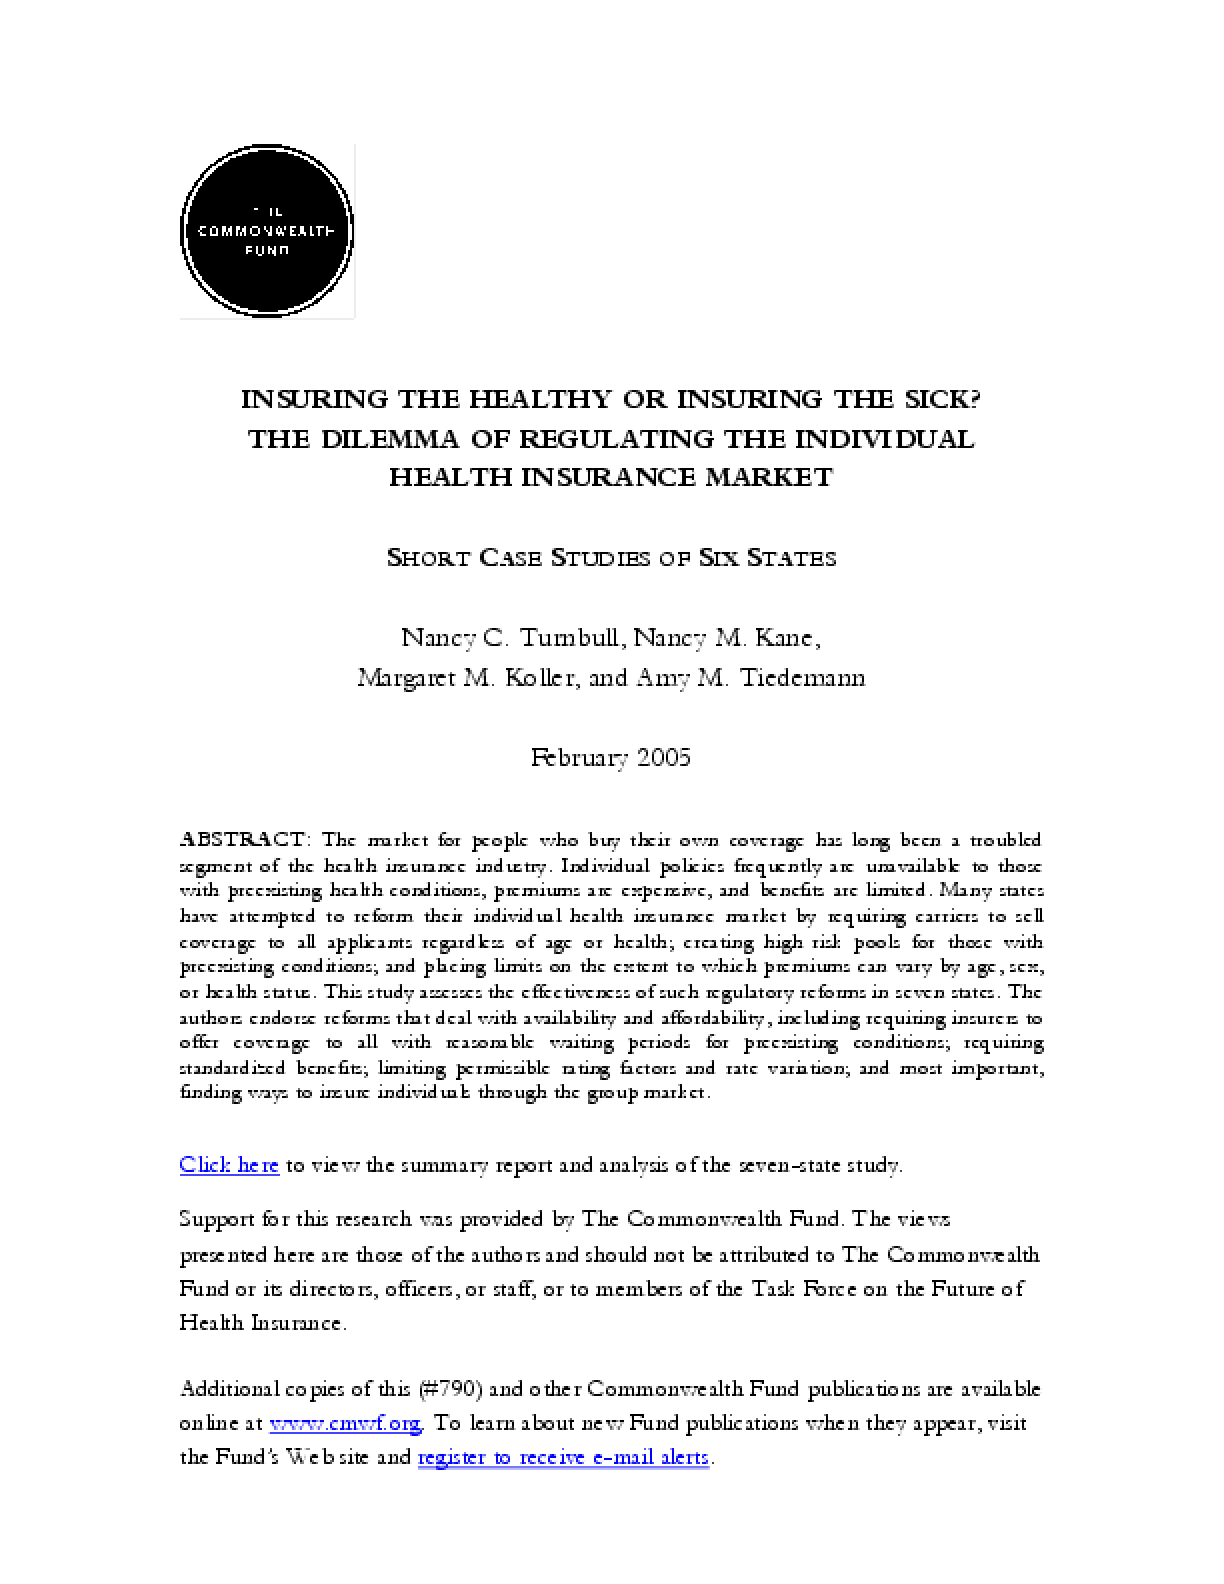 Insuring the Healthy or Insuring the Sick? The Dilemma of Regulating the Individual Health Insurance Market -- Short Case Studies of Six States